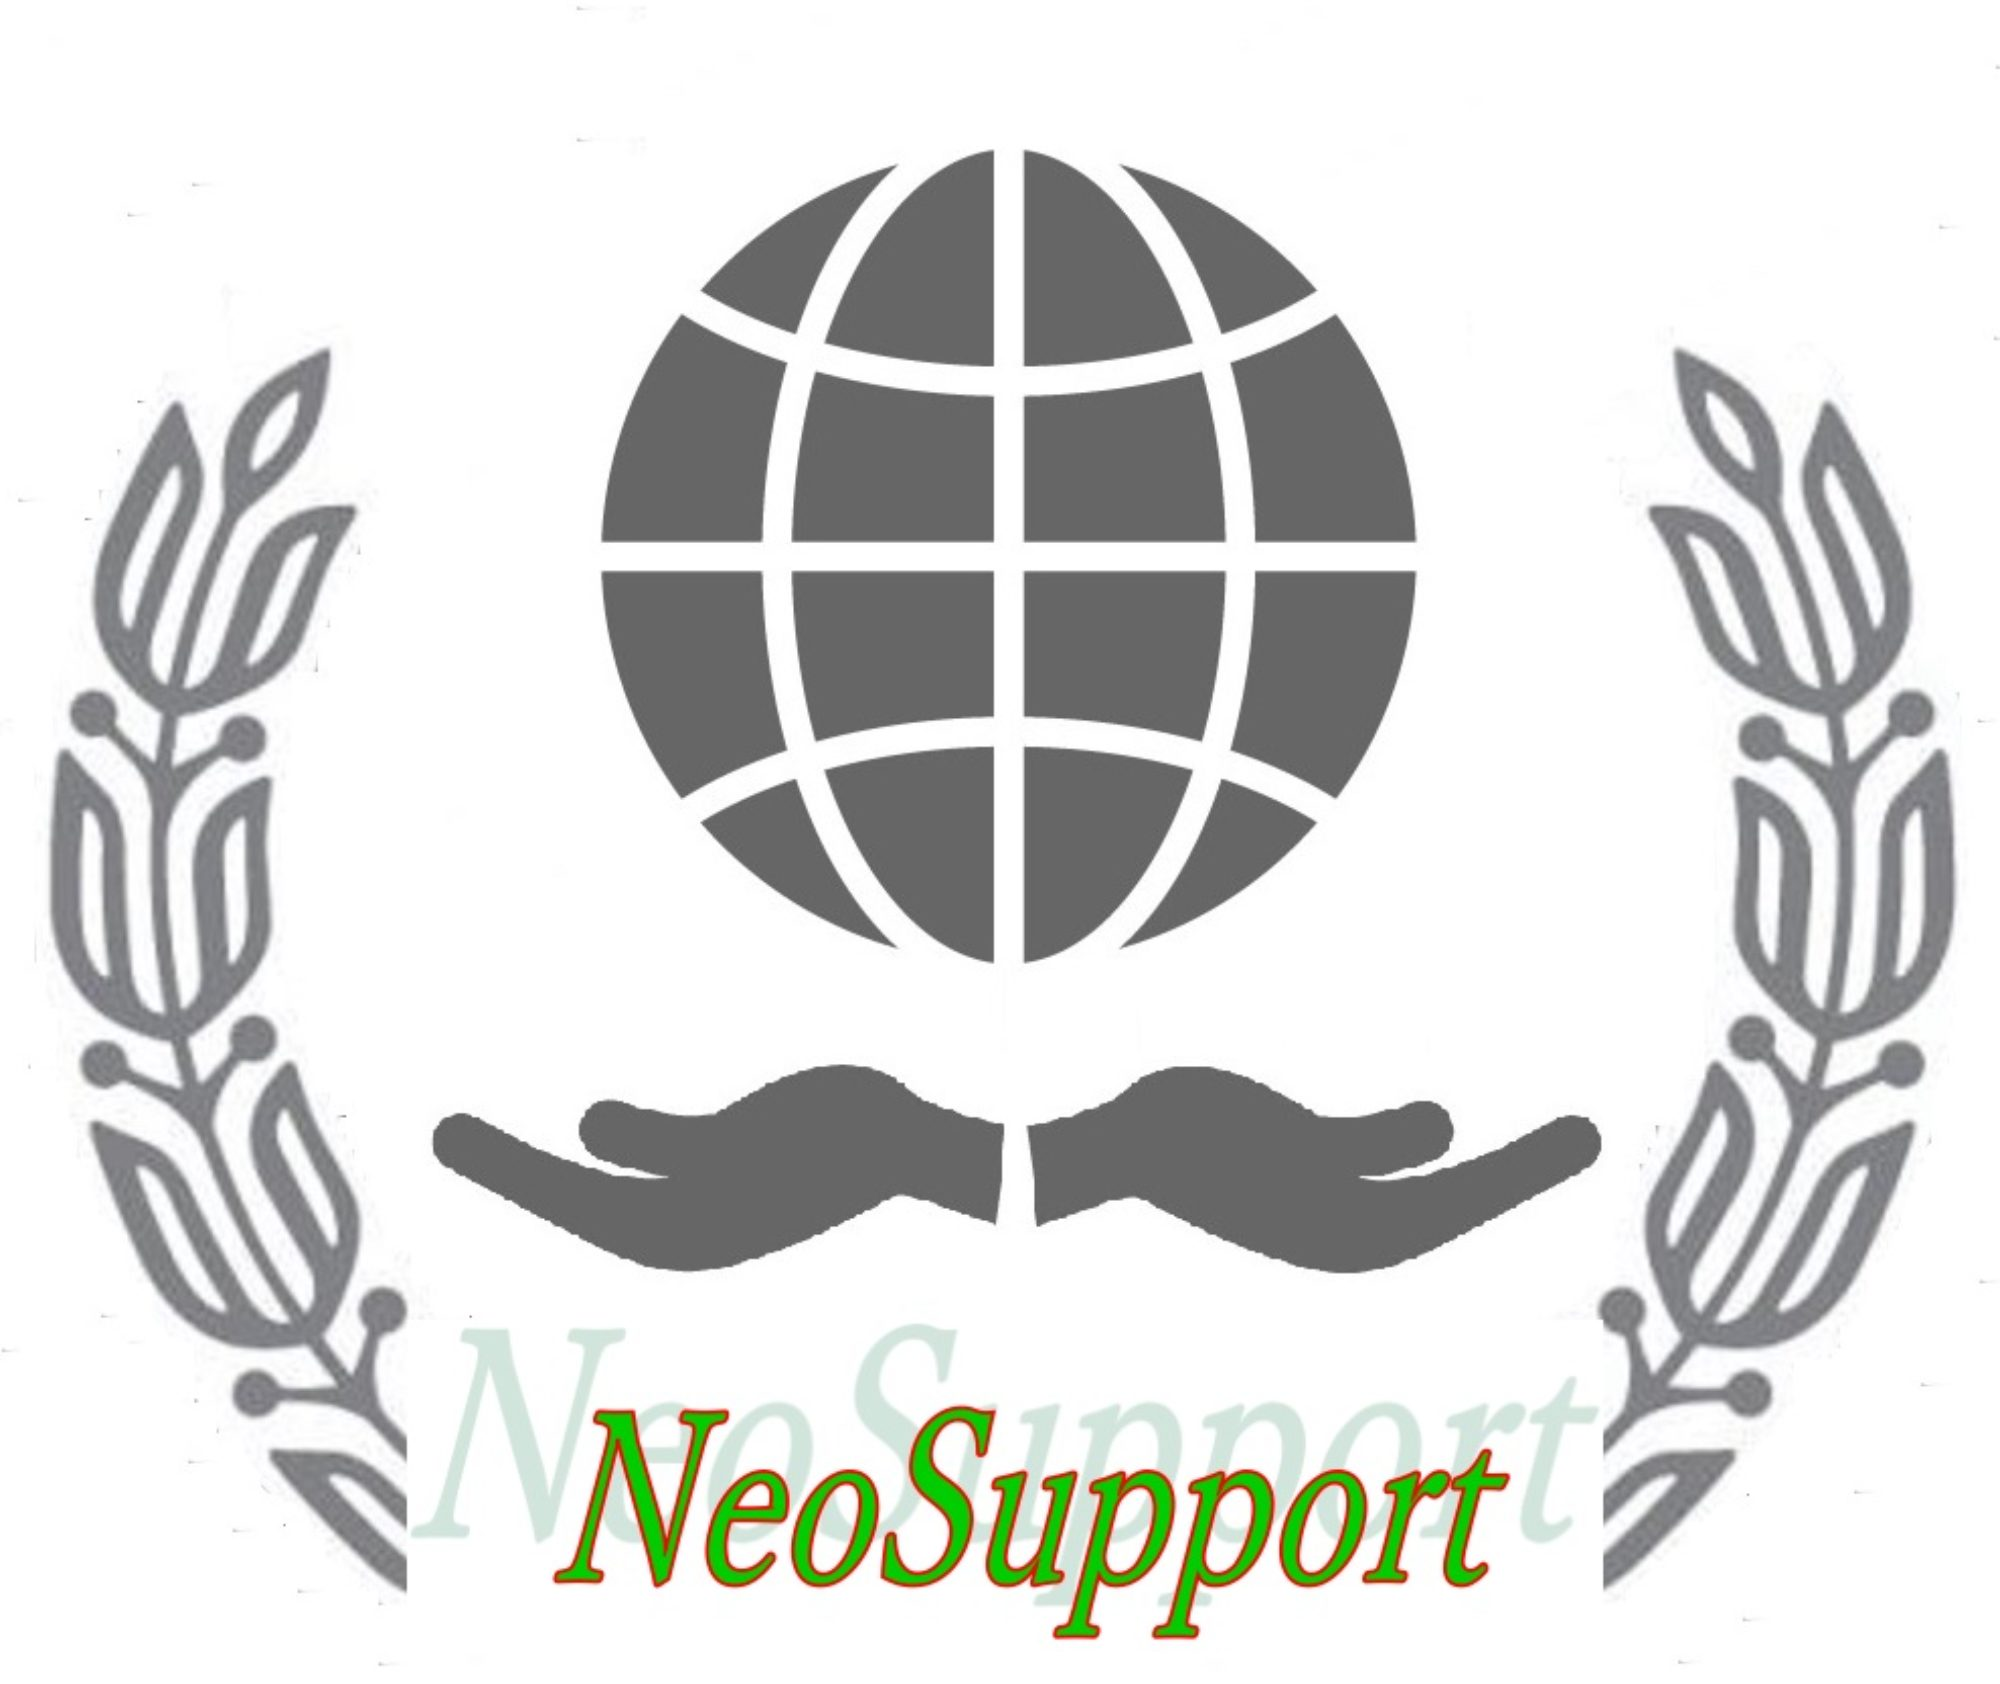 Neo Support